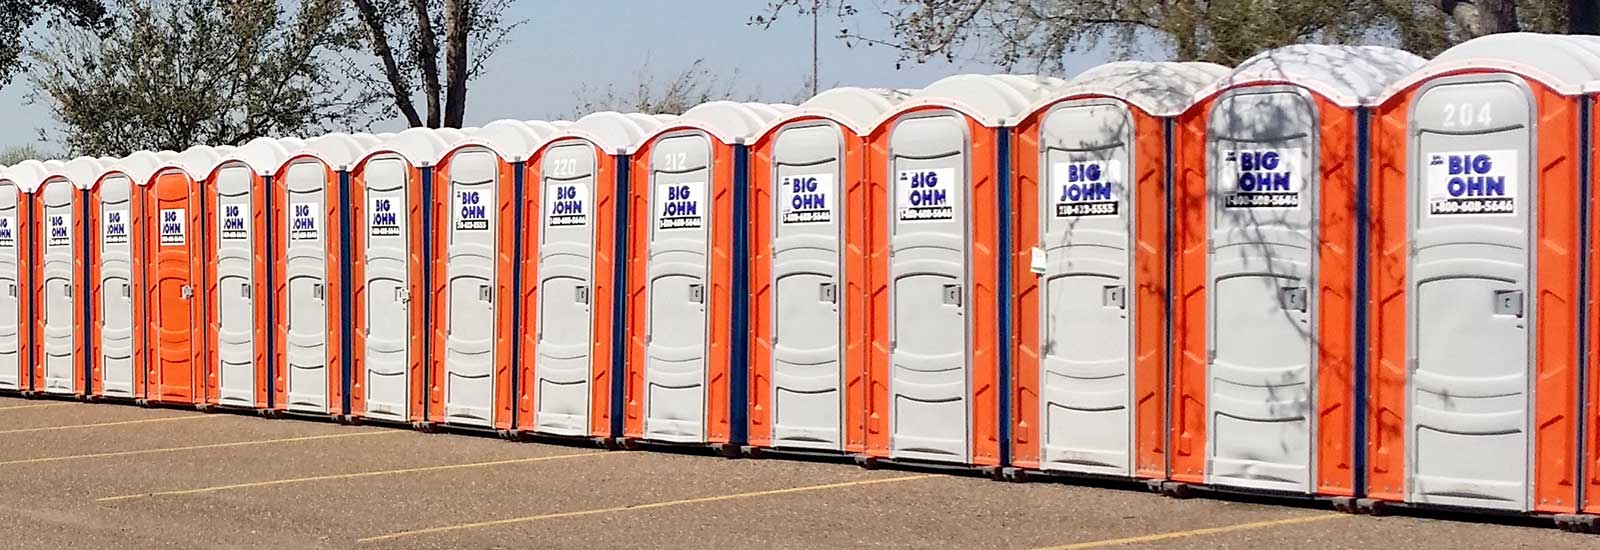 Porta potty rentals in Harlingen and San Antonio Texas, Edinburg, Harlingen, Brownsville, McAllen TX, New Braunfels, San Marcos, Rio Grande Valley